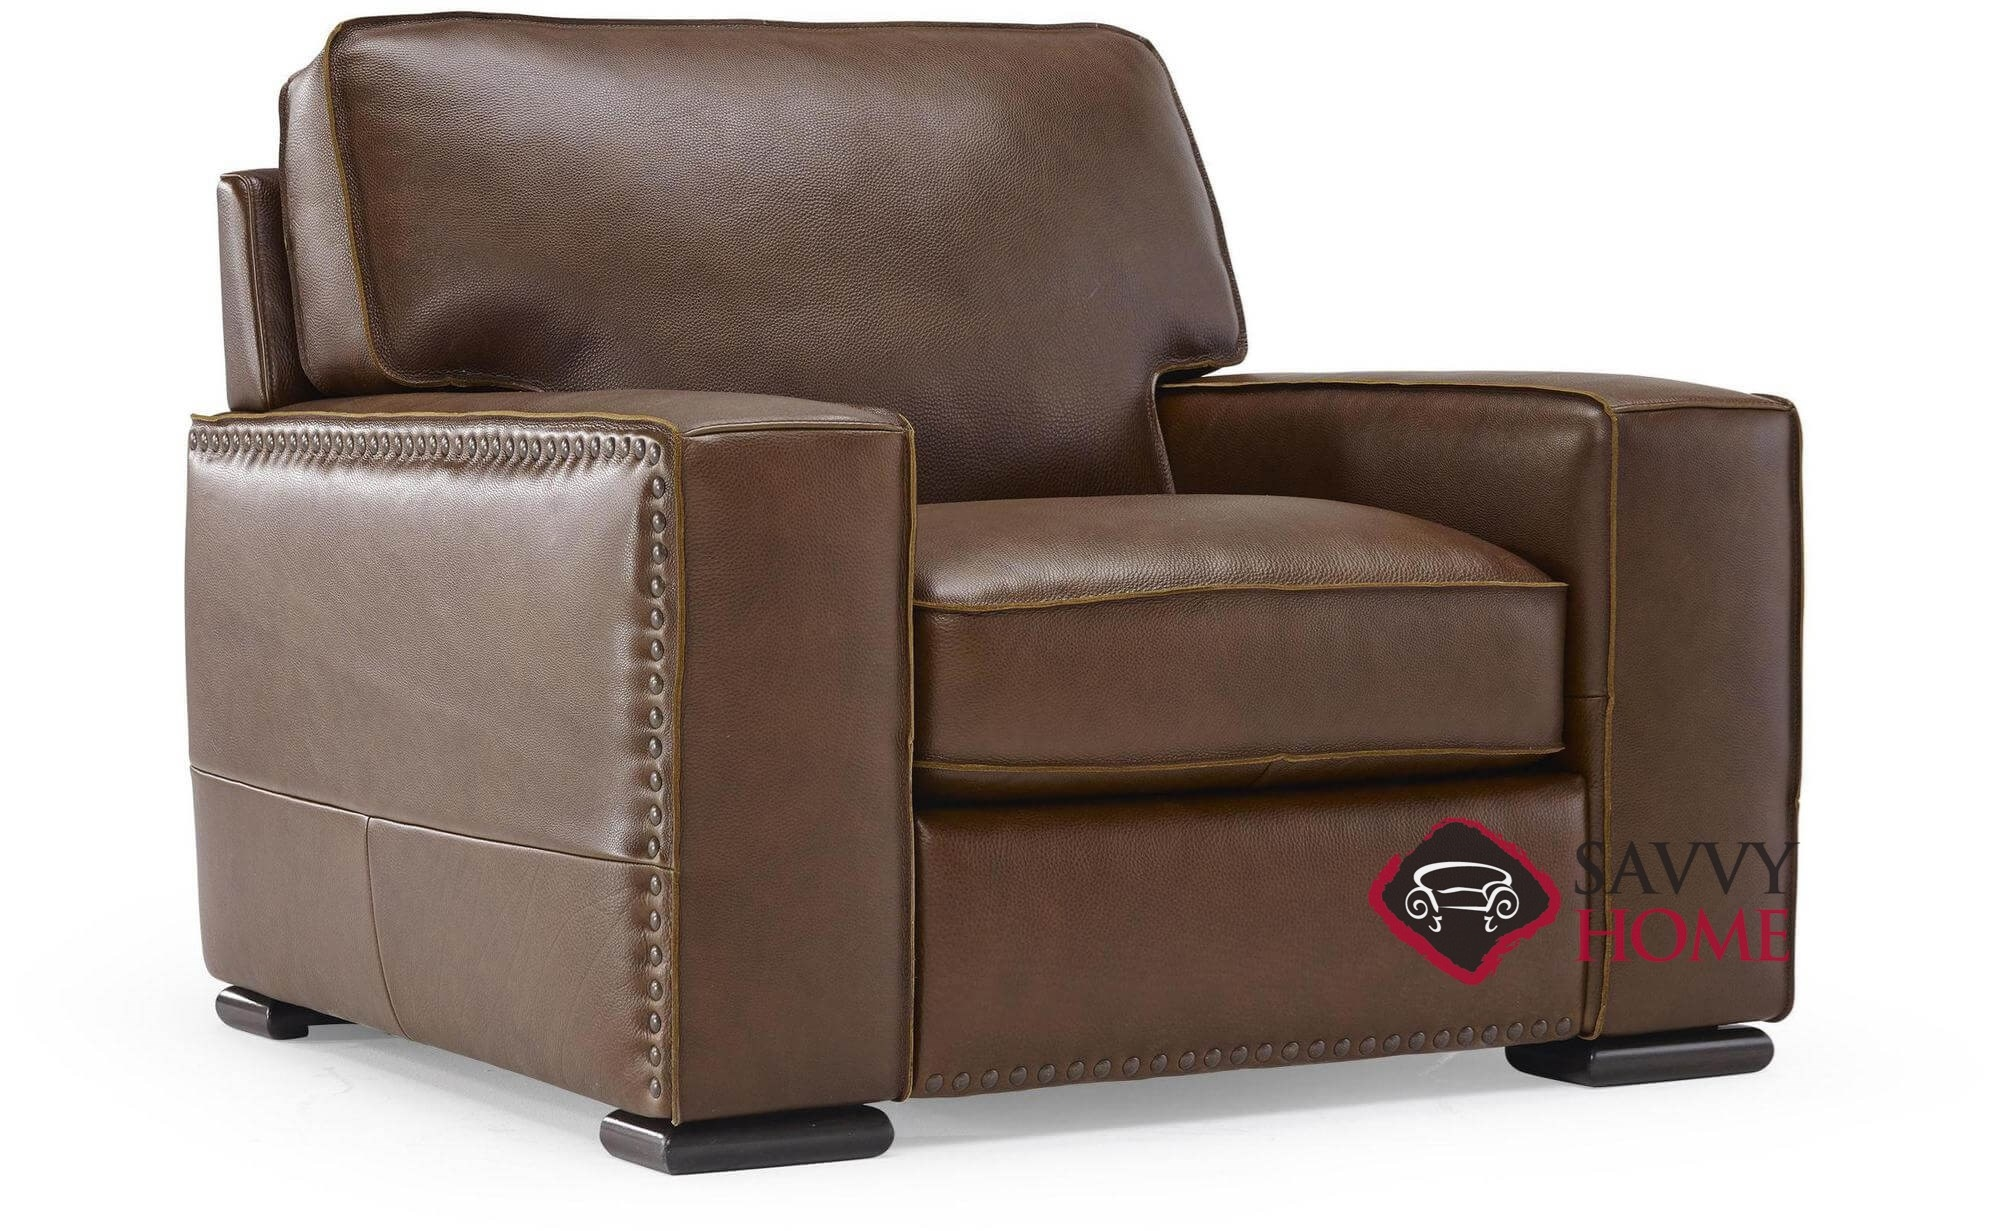 Strange Vincenzo B858 003 Leather Chair By Natuzzi Pdpeps Interior Chair Design Pdpepsorg